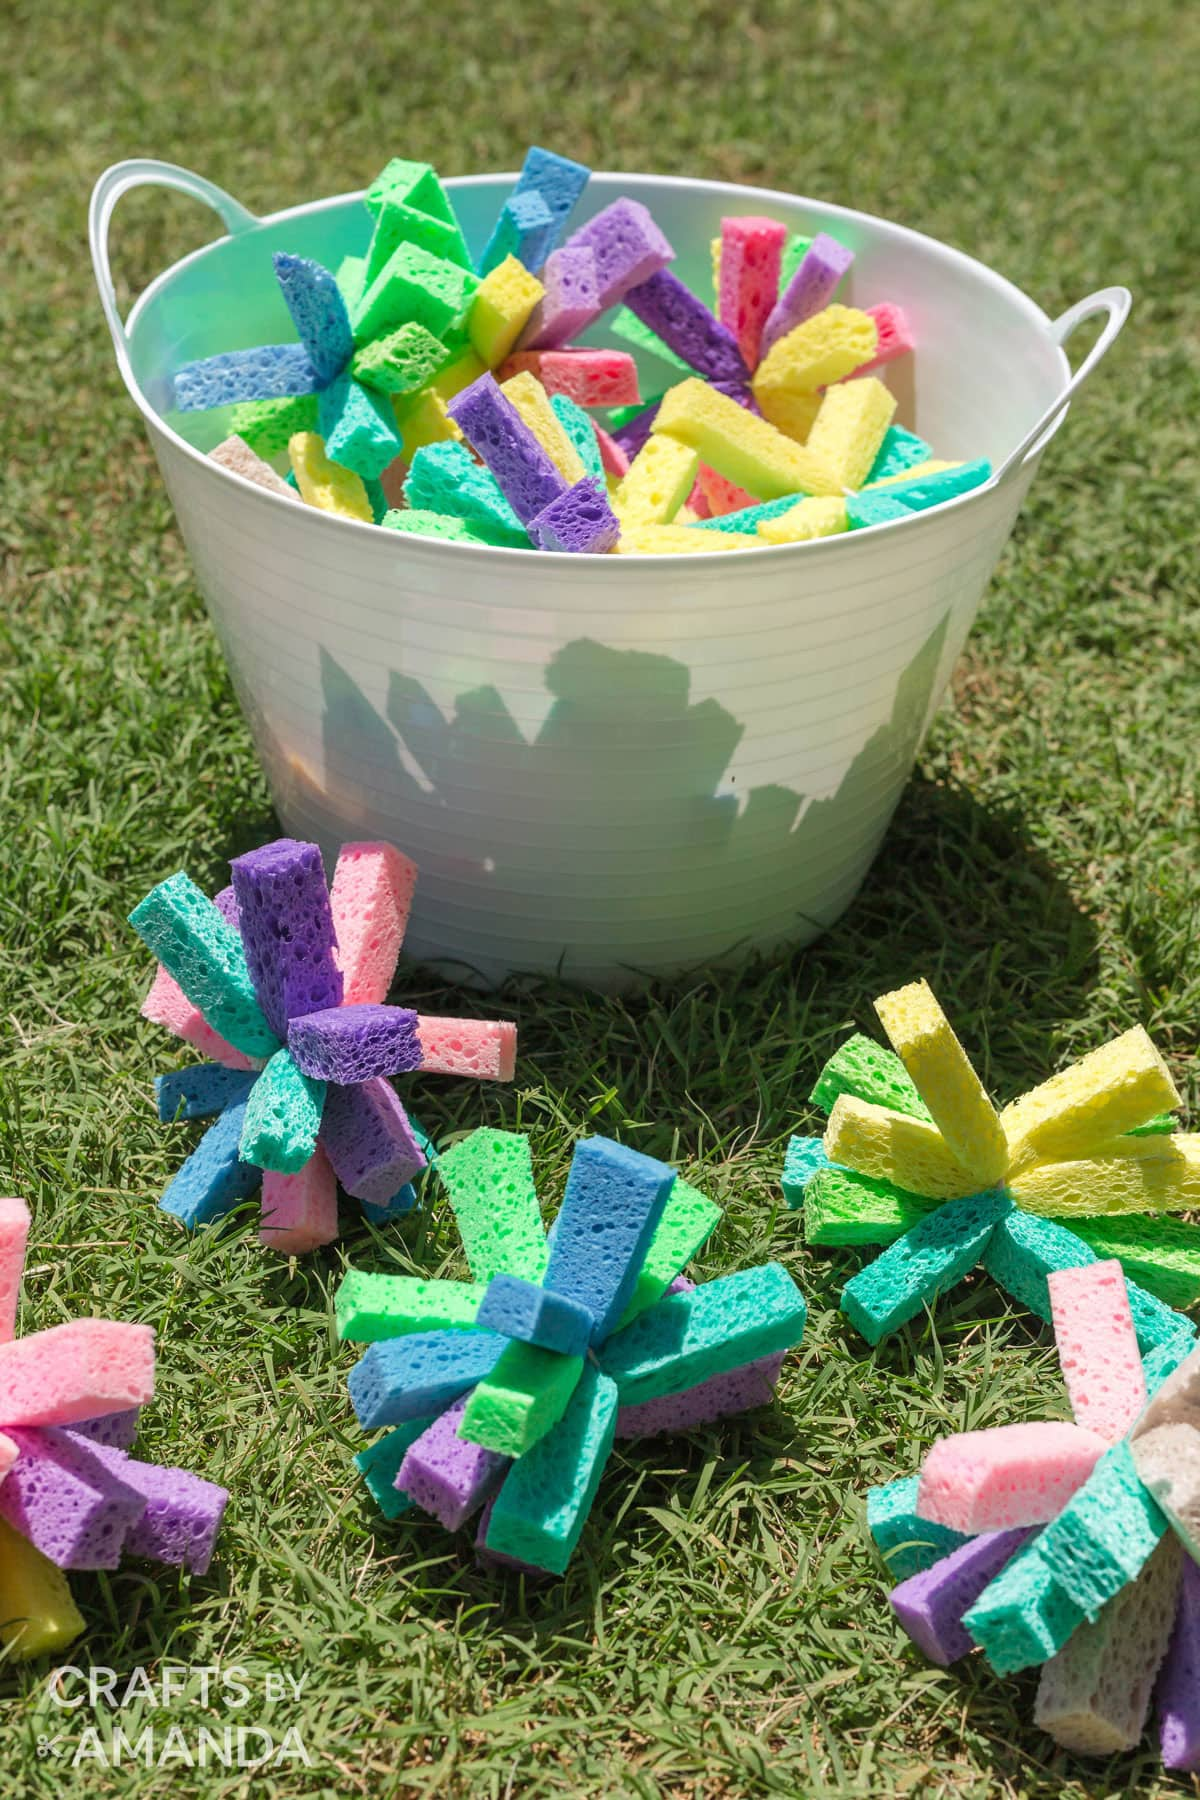 BUCKET OF SPONGE BOMBS SITTING IN THE GRASS